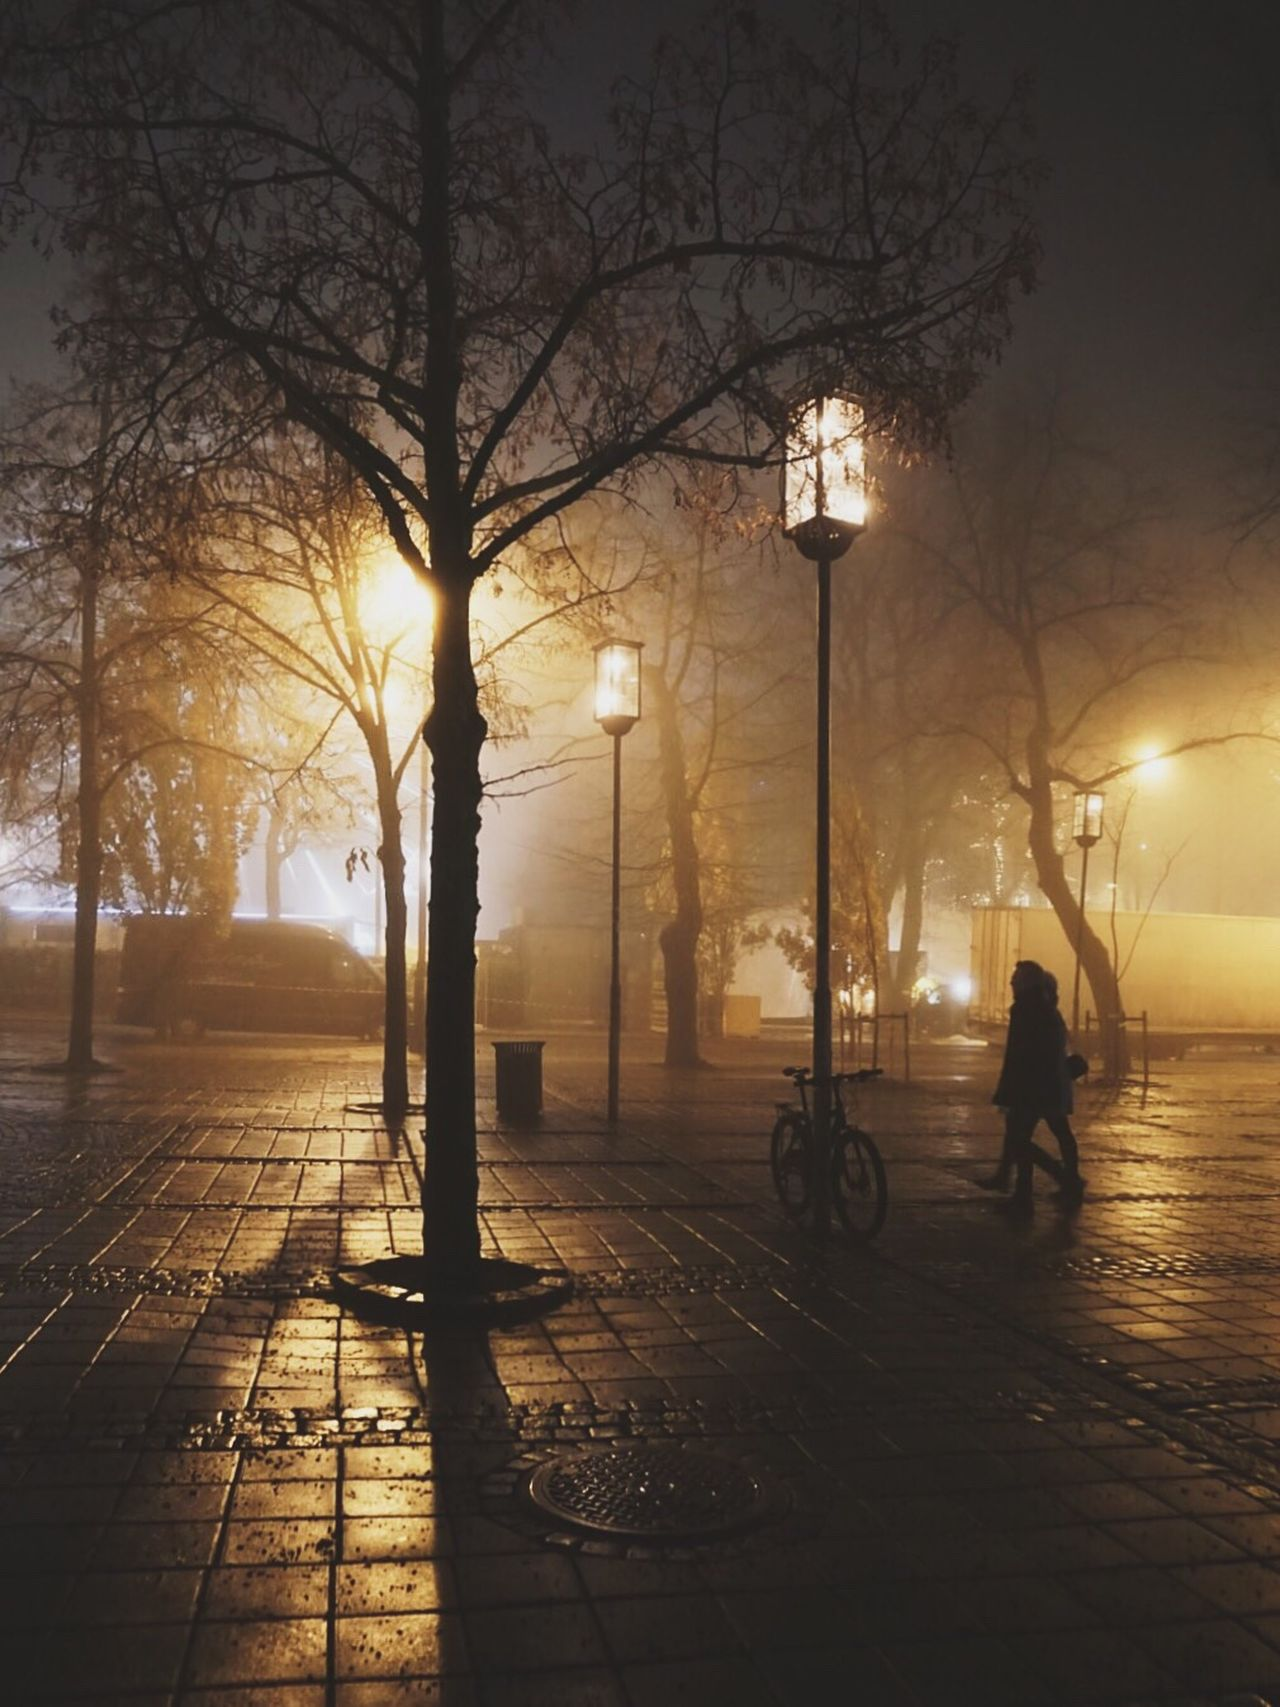 Fog changes everything Bicycle Vintage Photography Oslo Norway Vintage Modern Vintage Photography Modern Vintage Beautiful Destinations Oslo Visitoslo Nightphotography Norway Foggy Night City Life City Lights Visitnorway